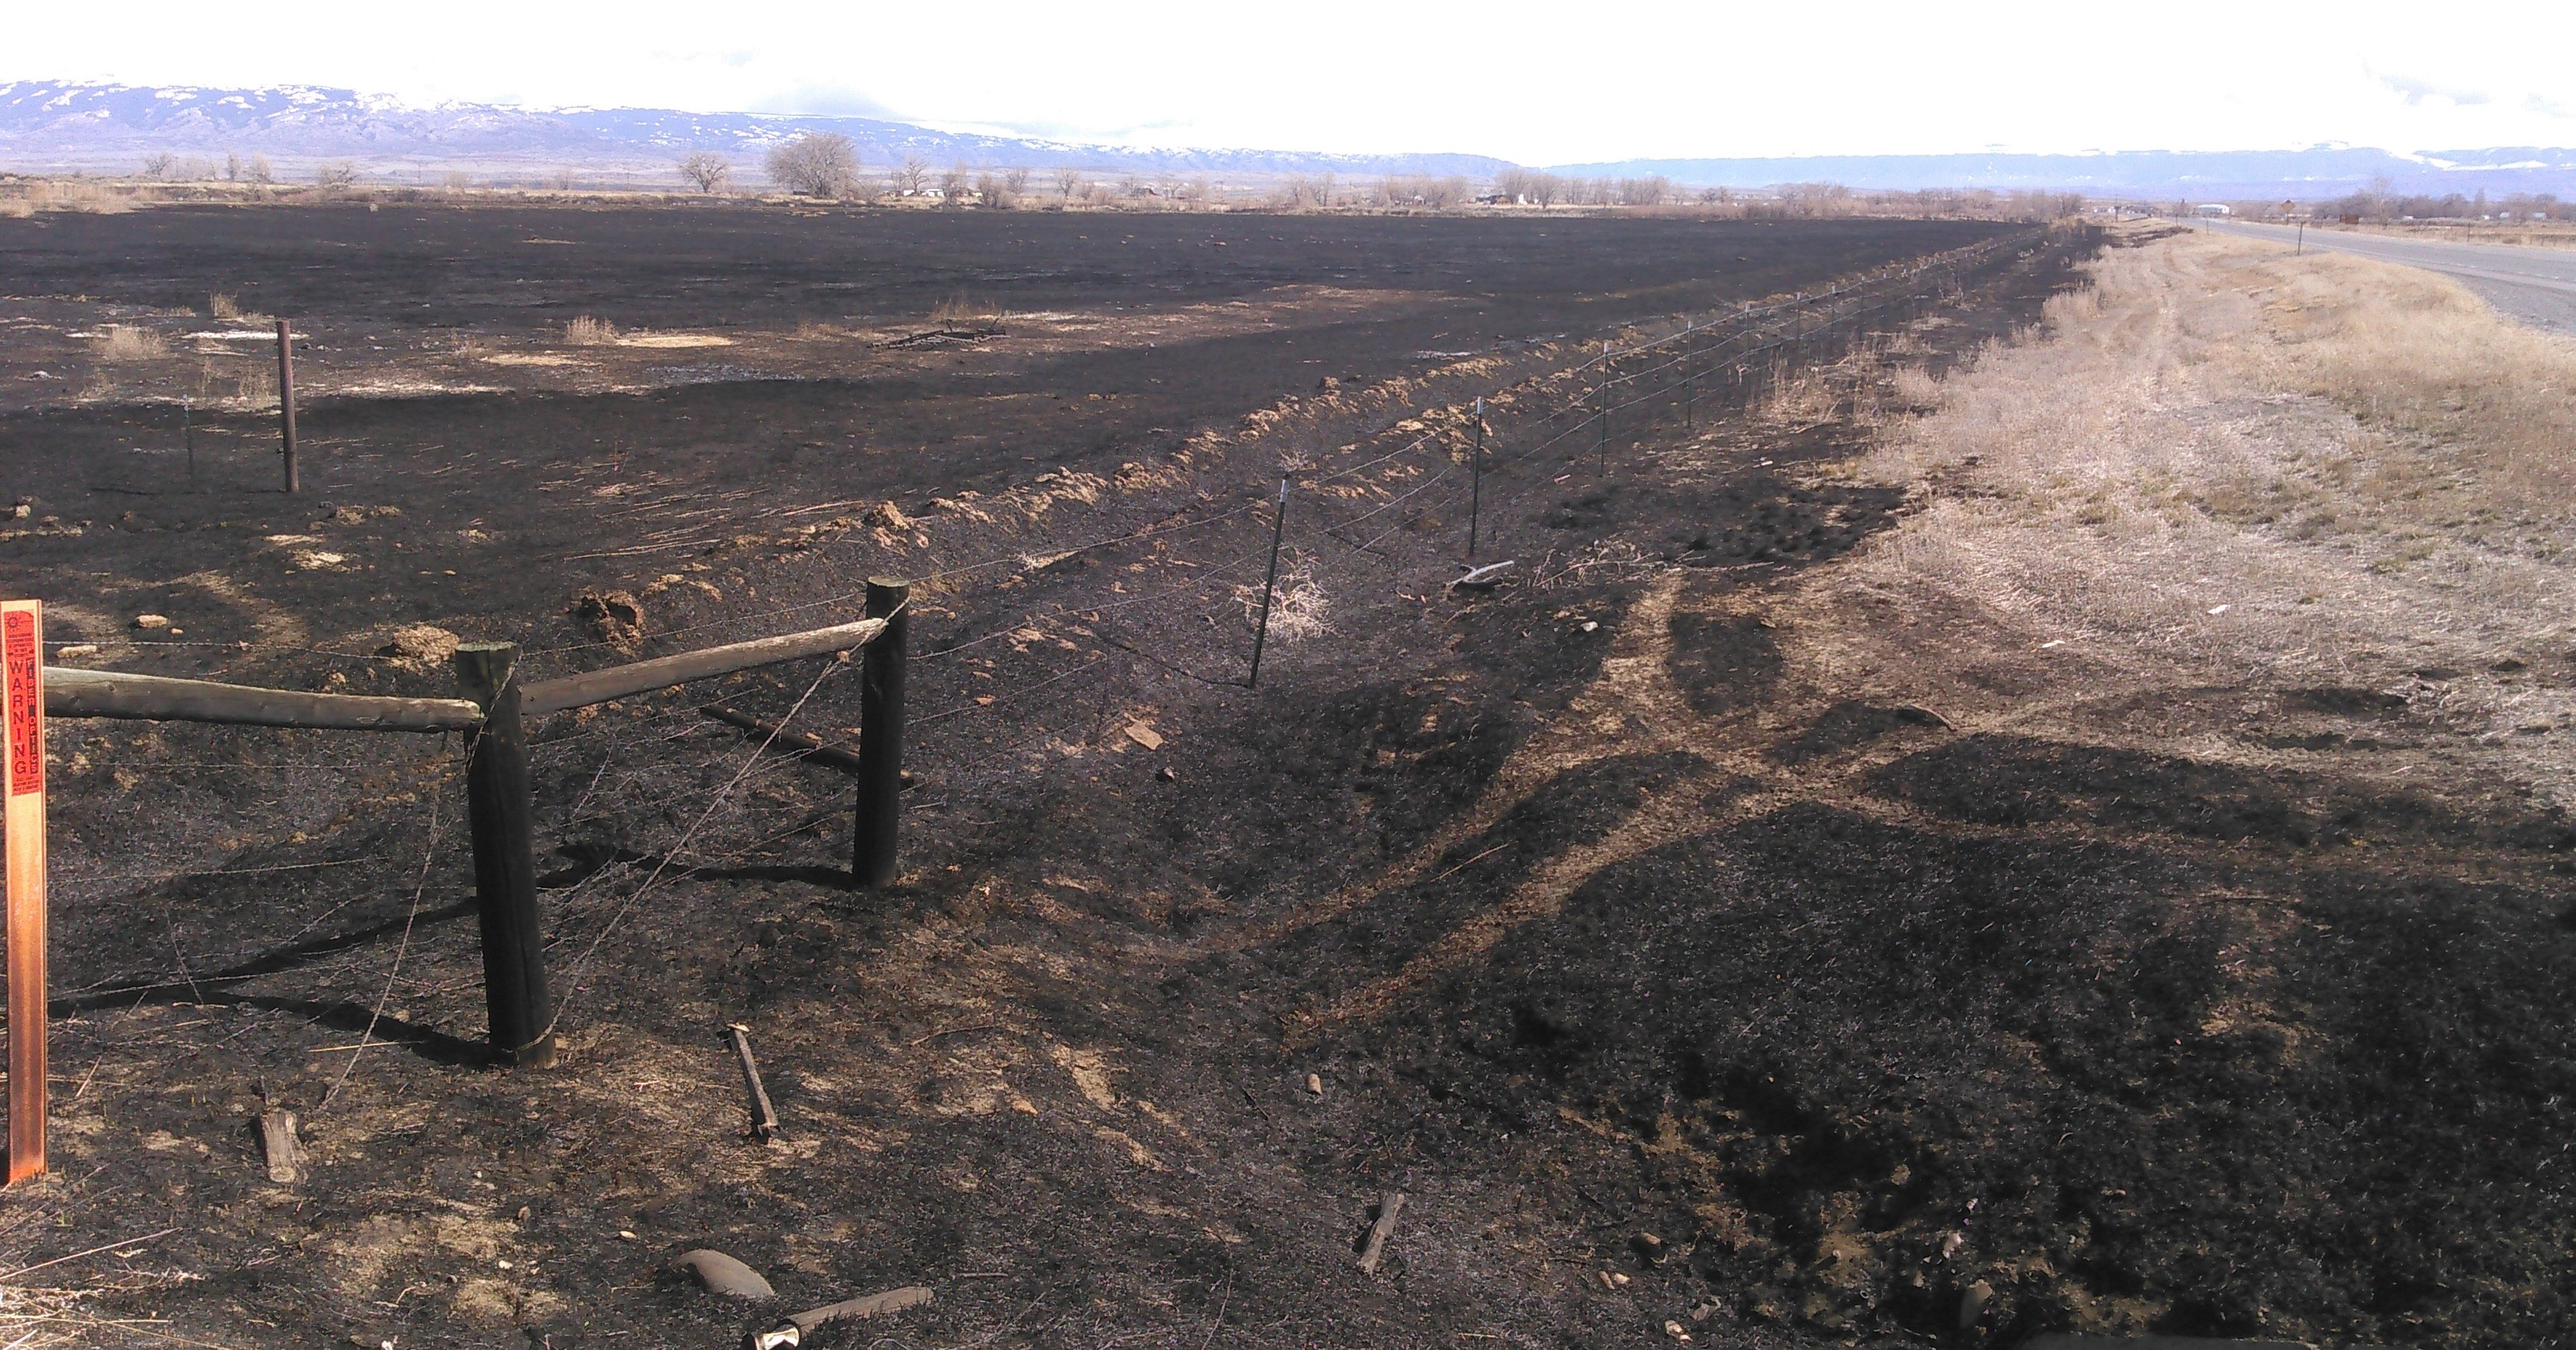 Spring burning? Plan ahead, Avoid State Rights-of-Way